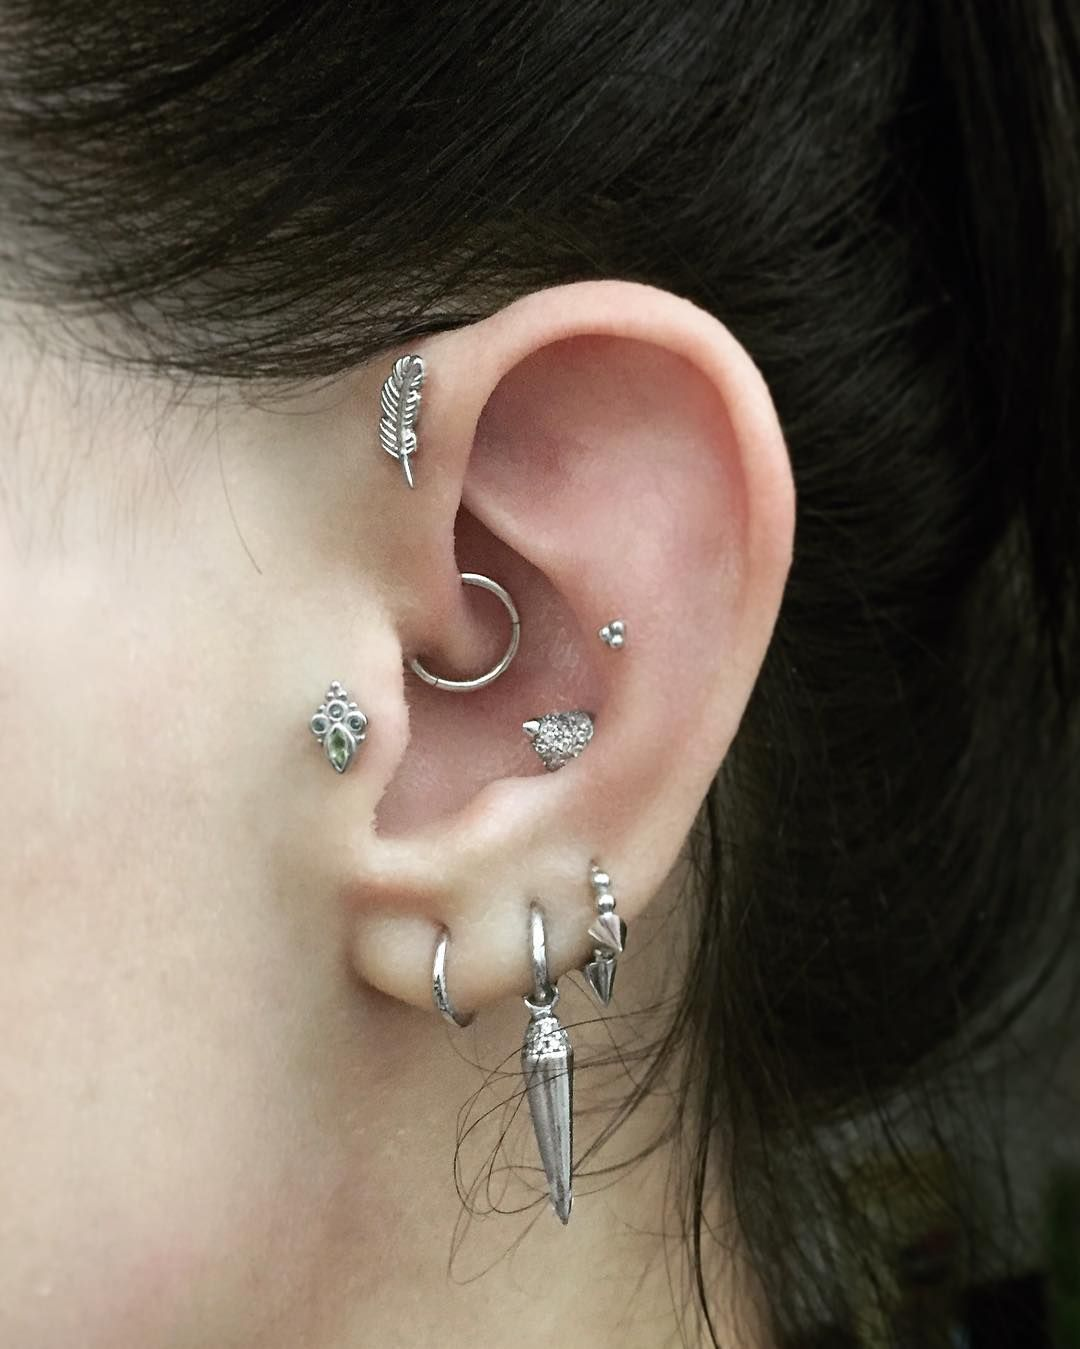 Pin by Alexa Strassner on Piercing ideas | Ear piercings ...